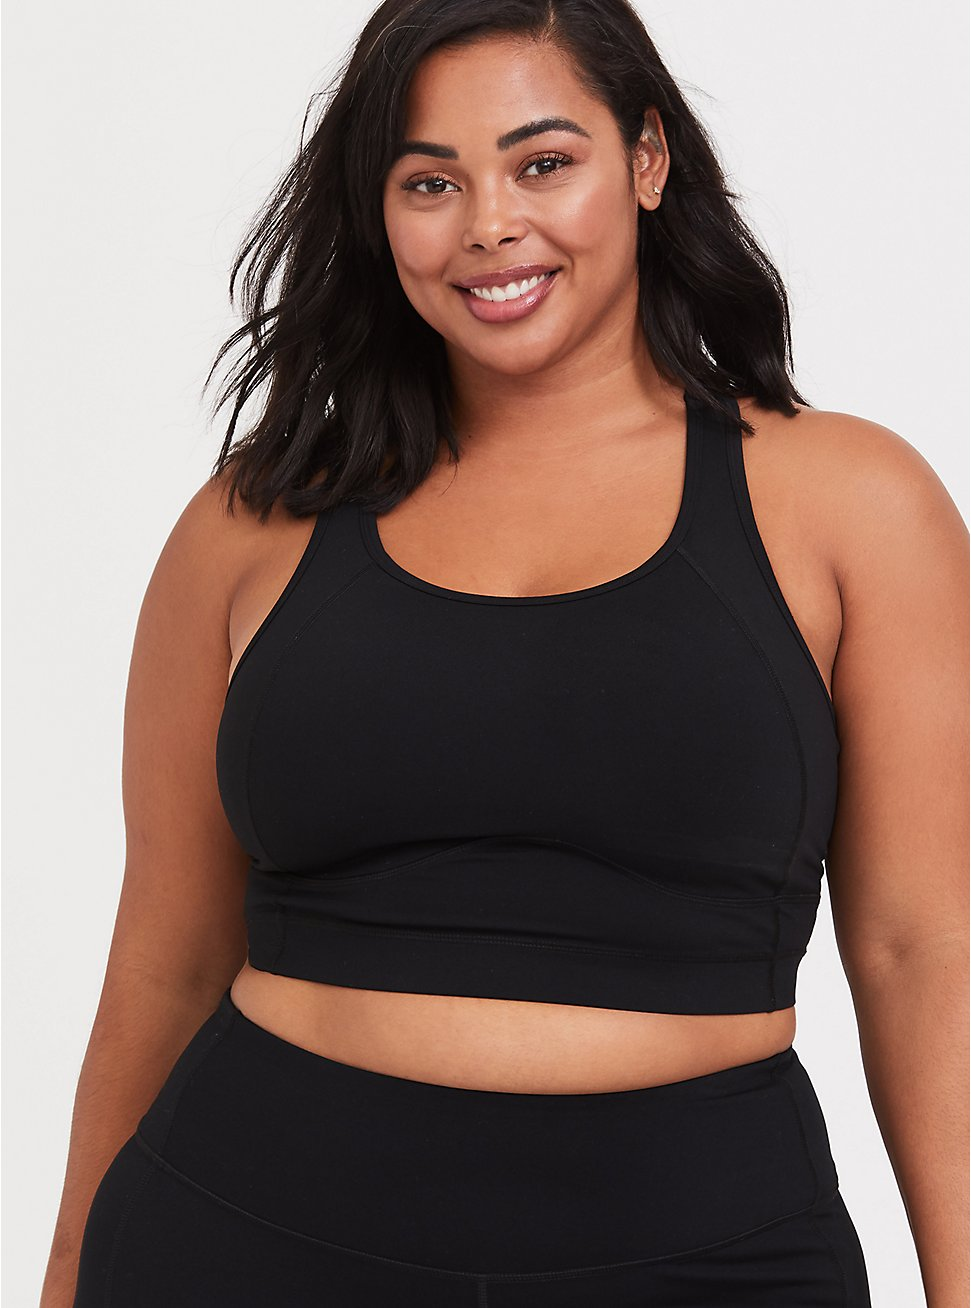 Black Longline Wicking Sports Bra, BLACK, hi-res